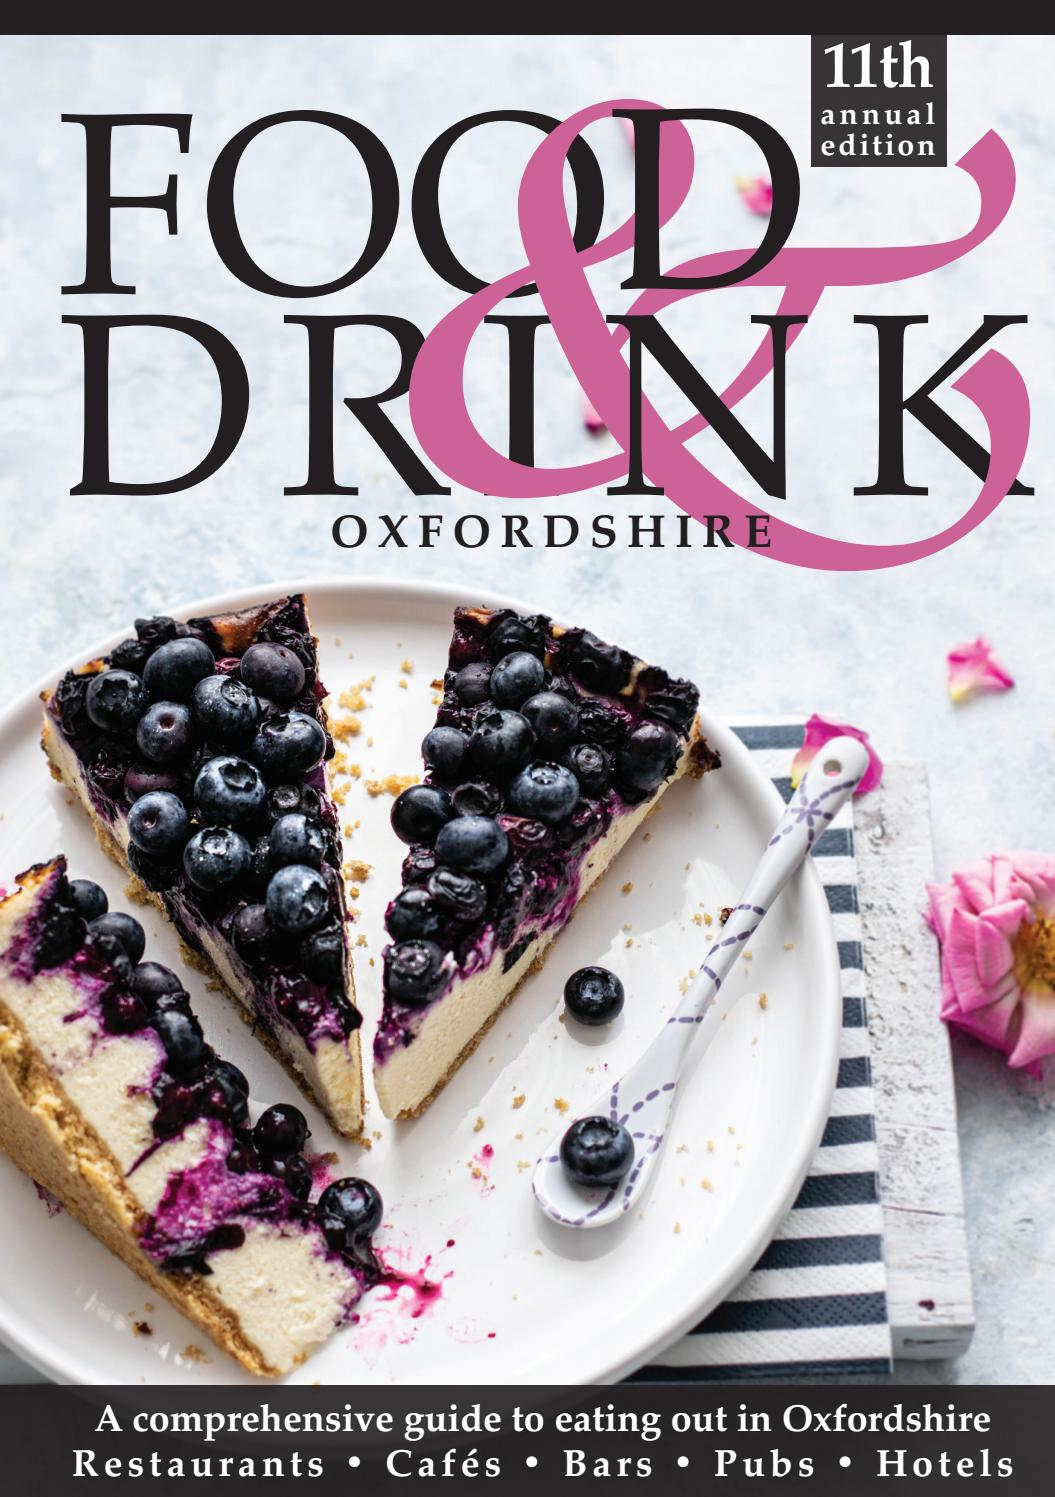 Oxfordshire Food Drink Guide 2020 By Food Drink Guides